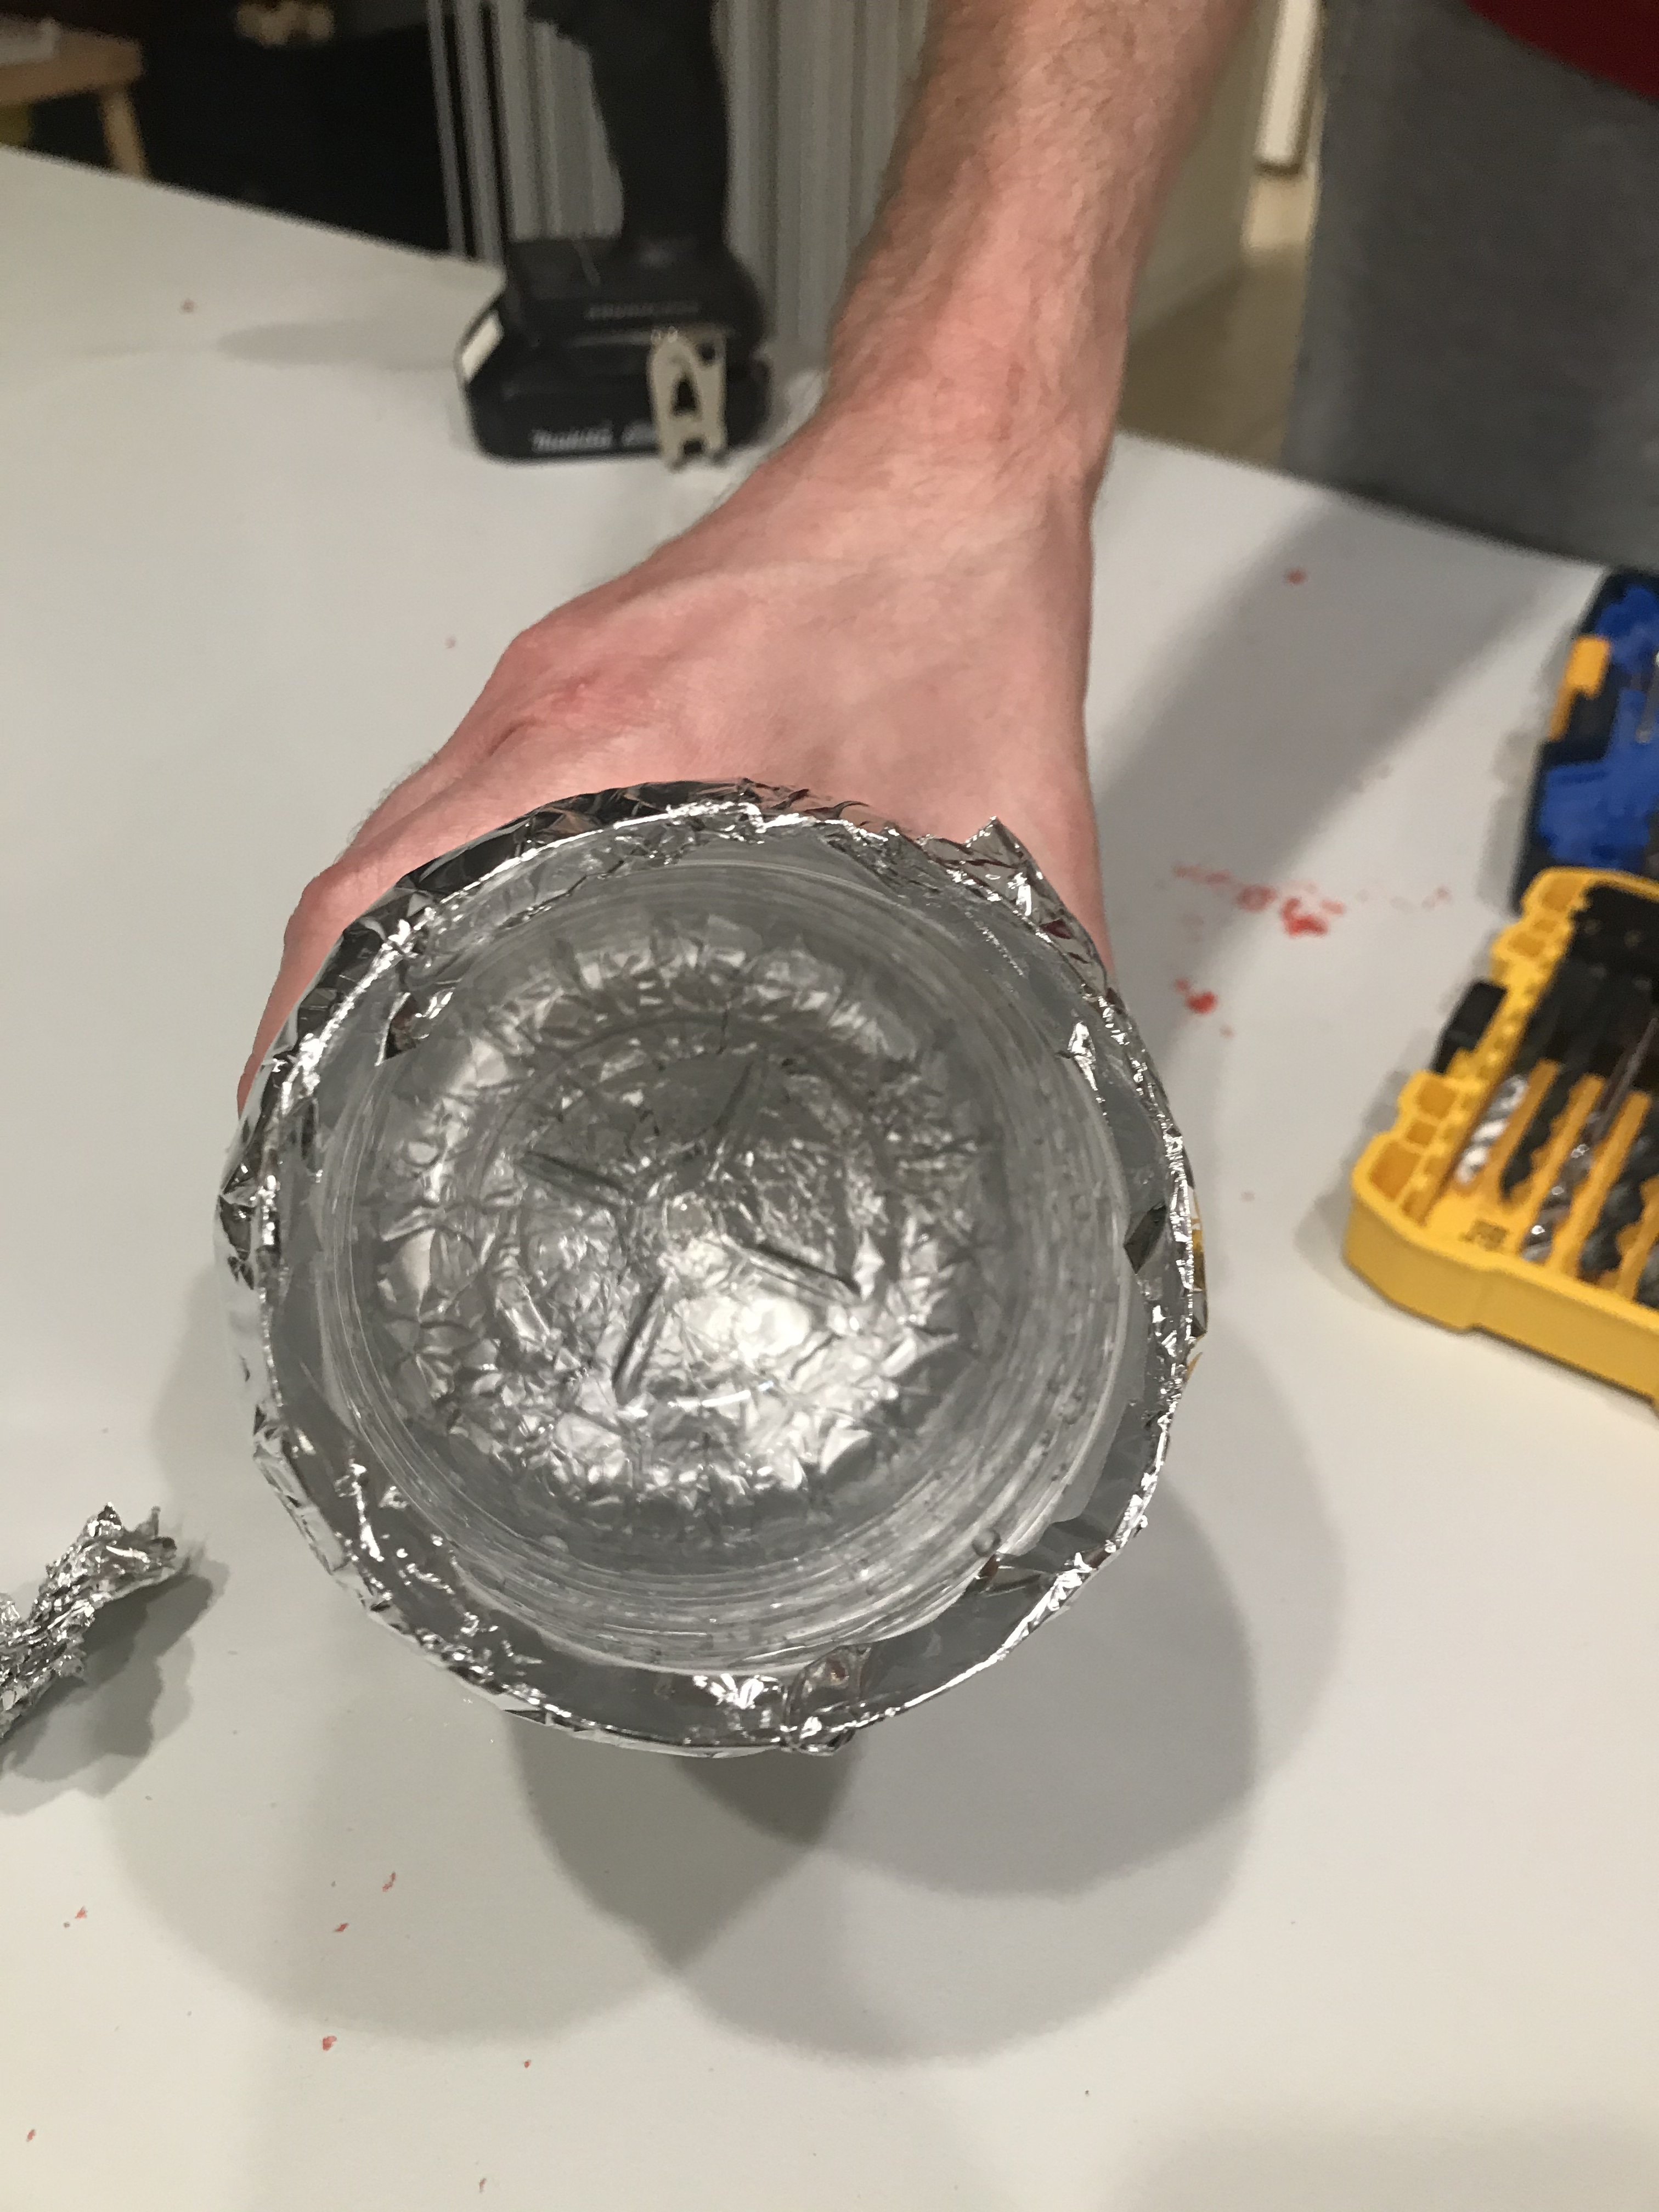 Inside of Bottle with Foil Wrapped Around